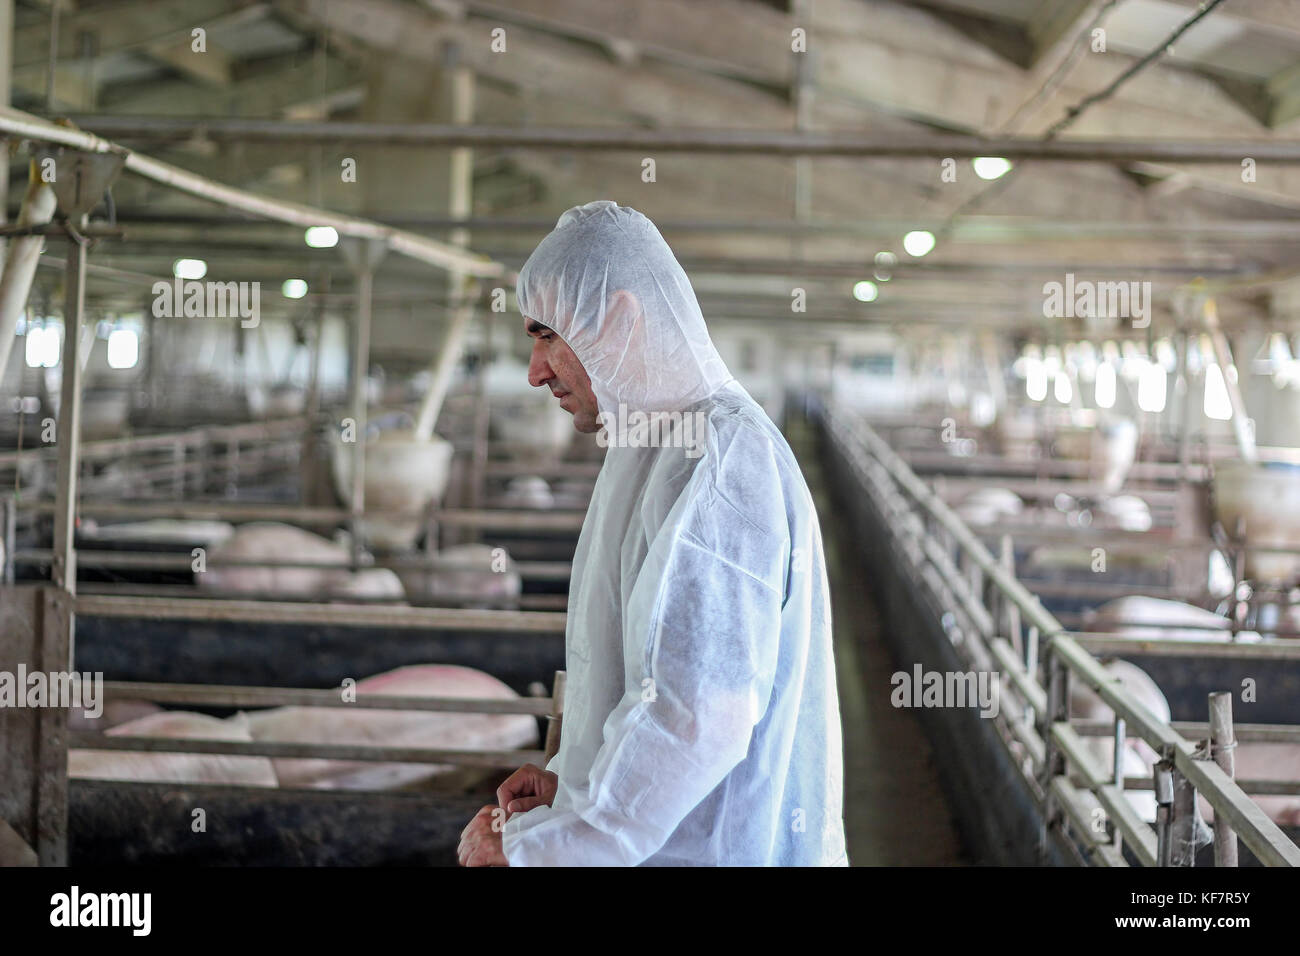 Veterinarian doctor wearing protective suit.  Intensive pig farming. Pig farm worker. - Stock Image